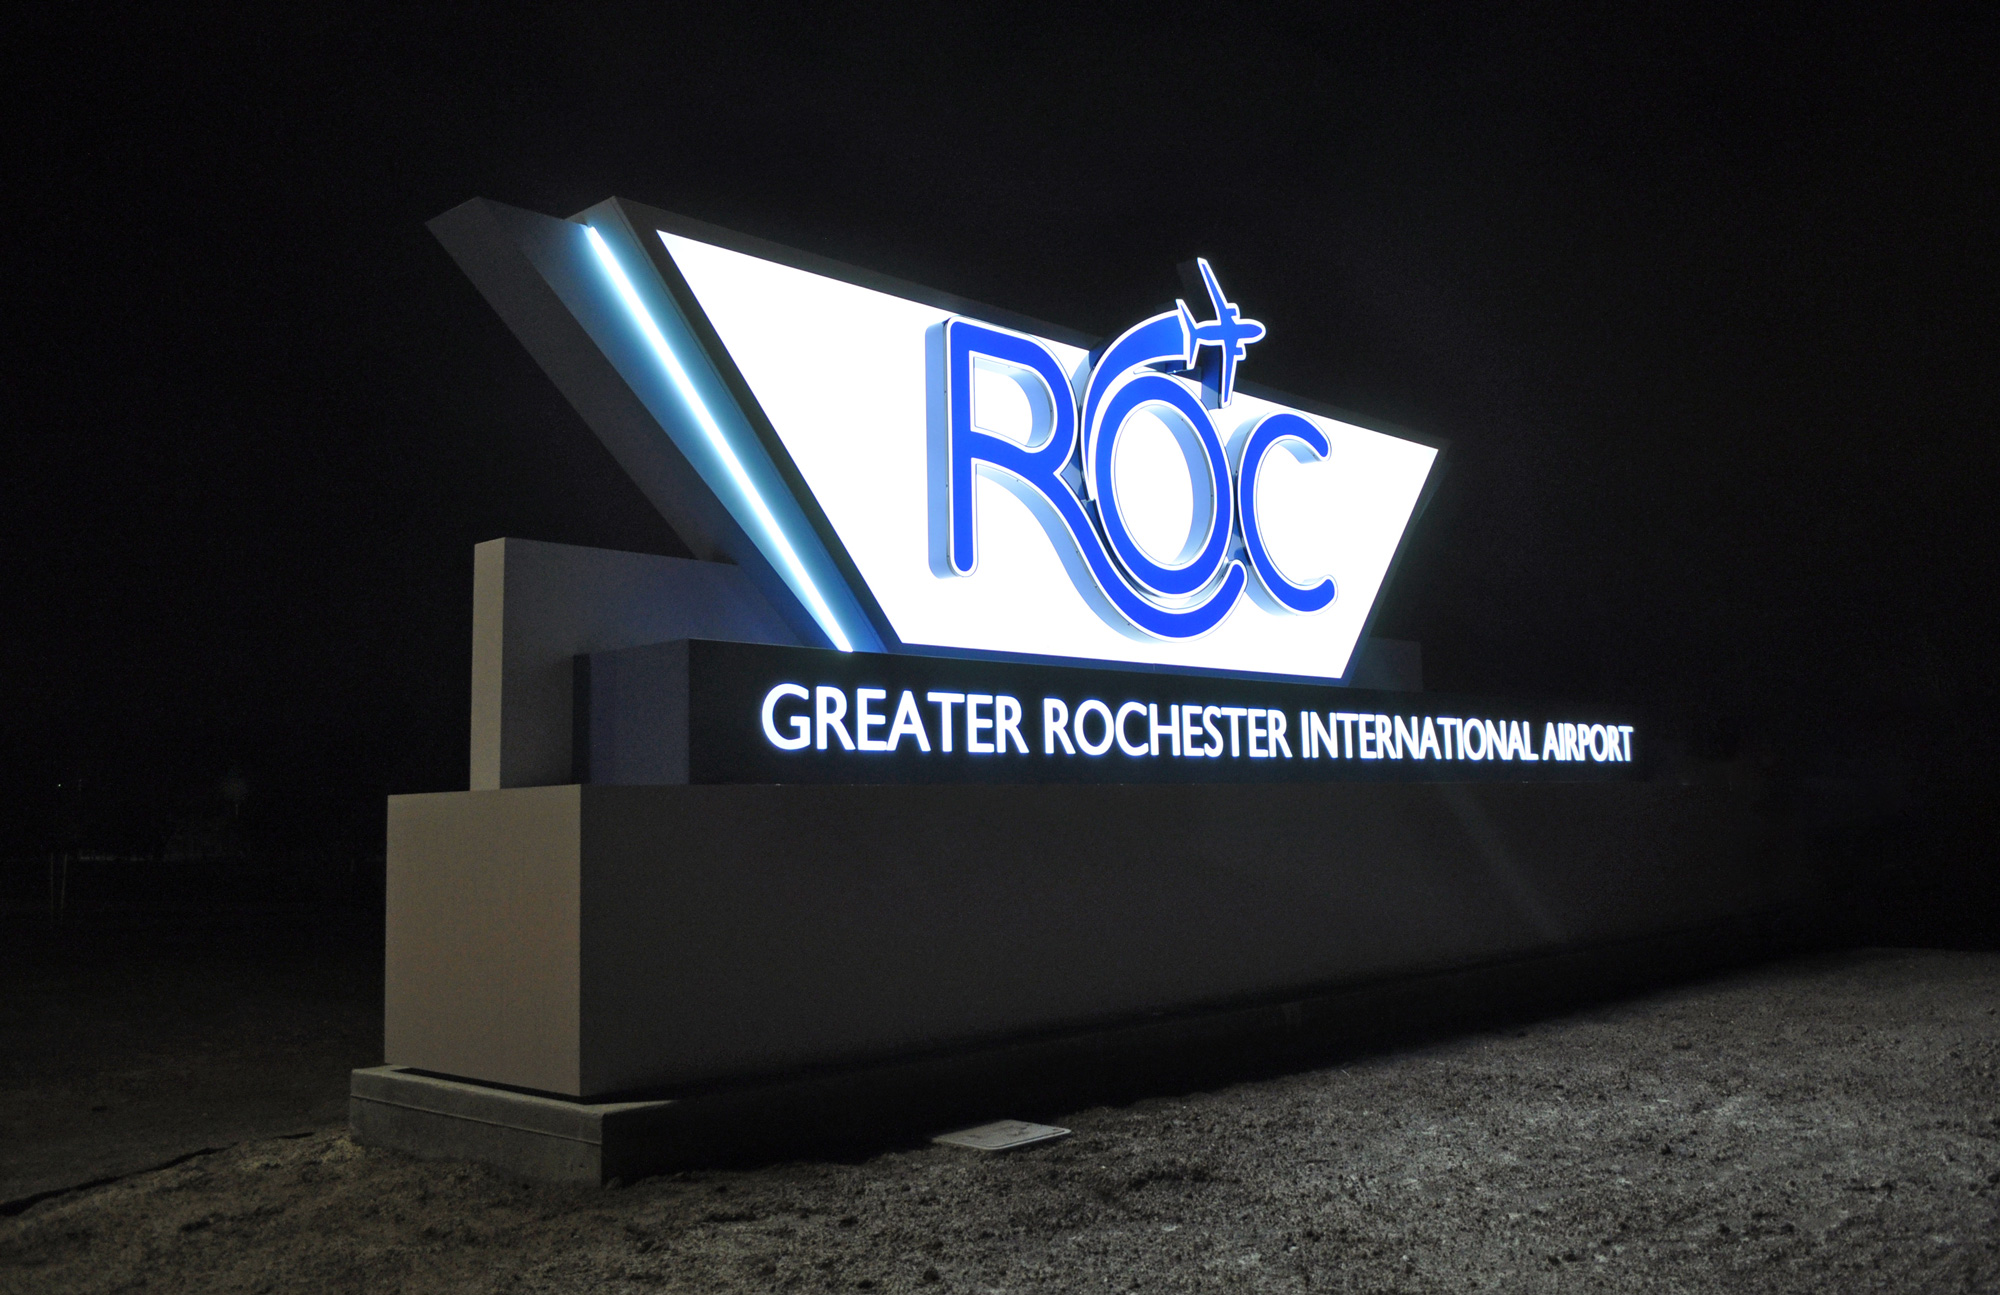 Architectural Signs at Rochester Airport